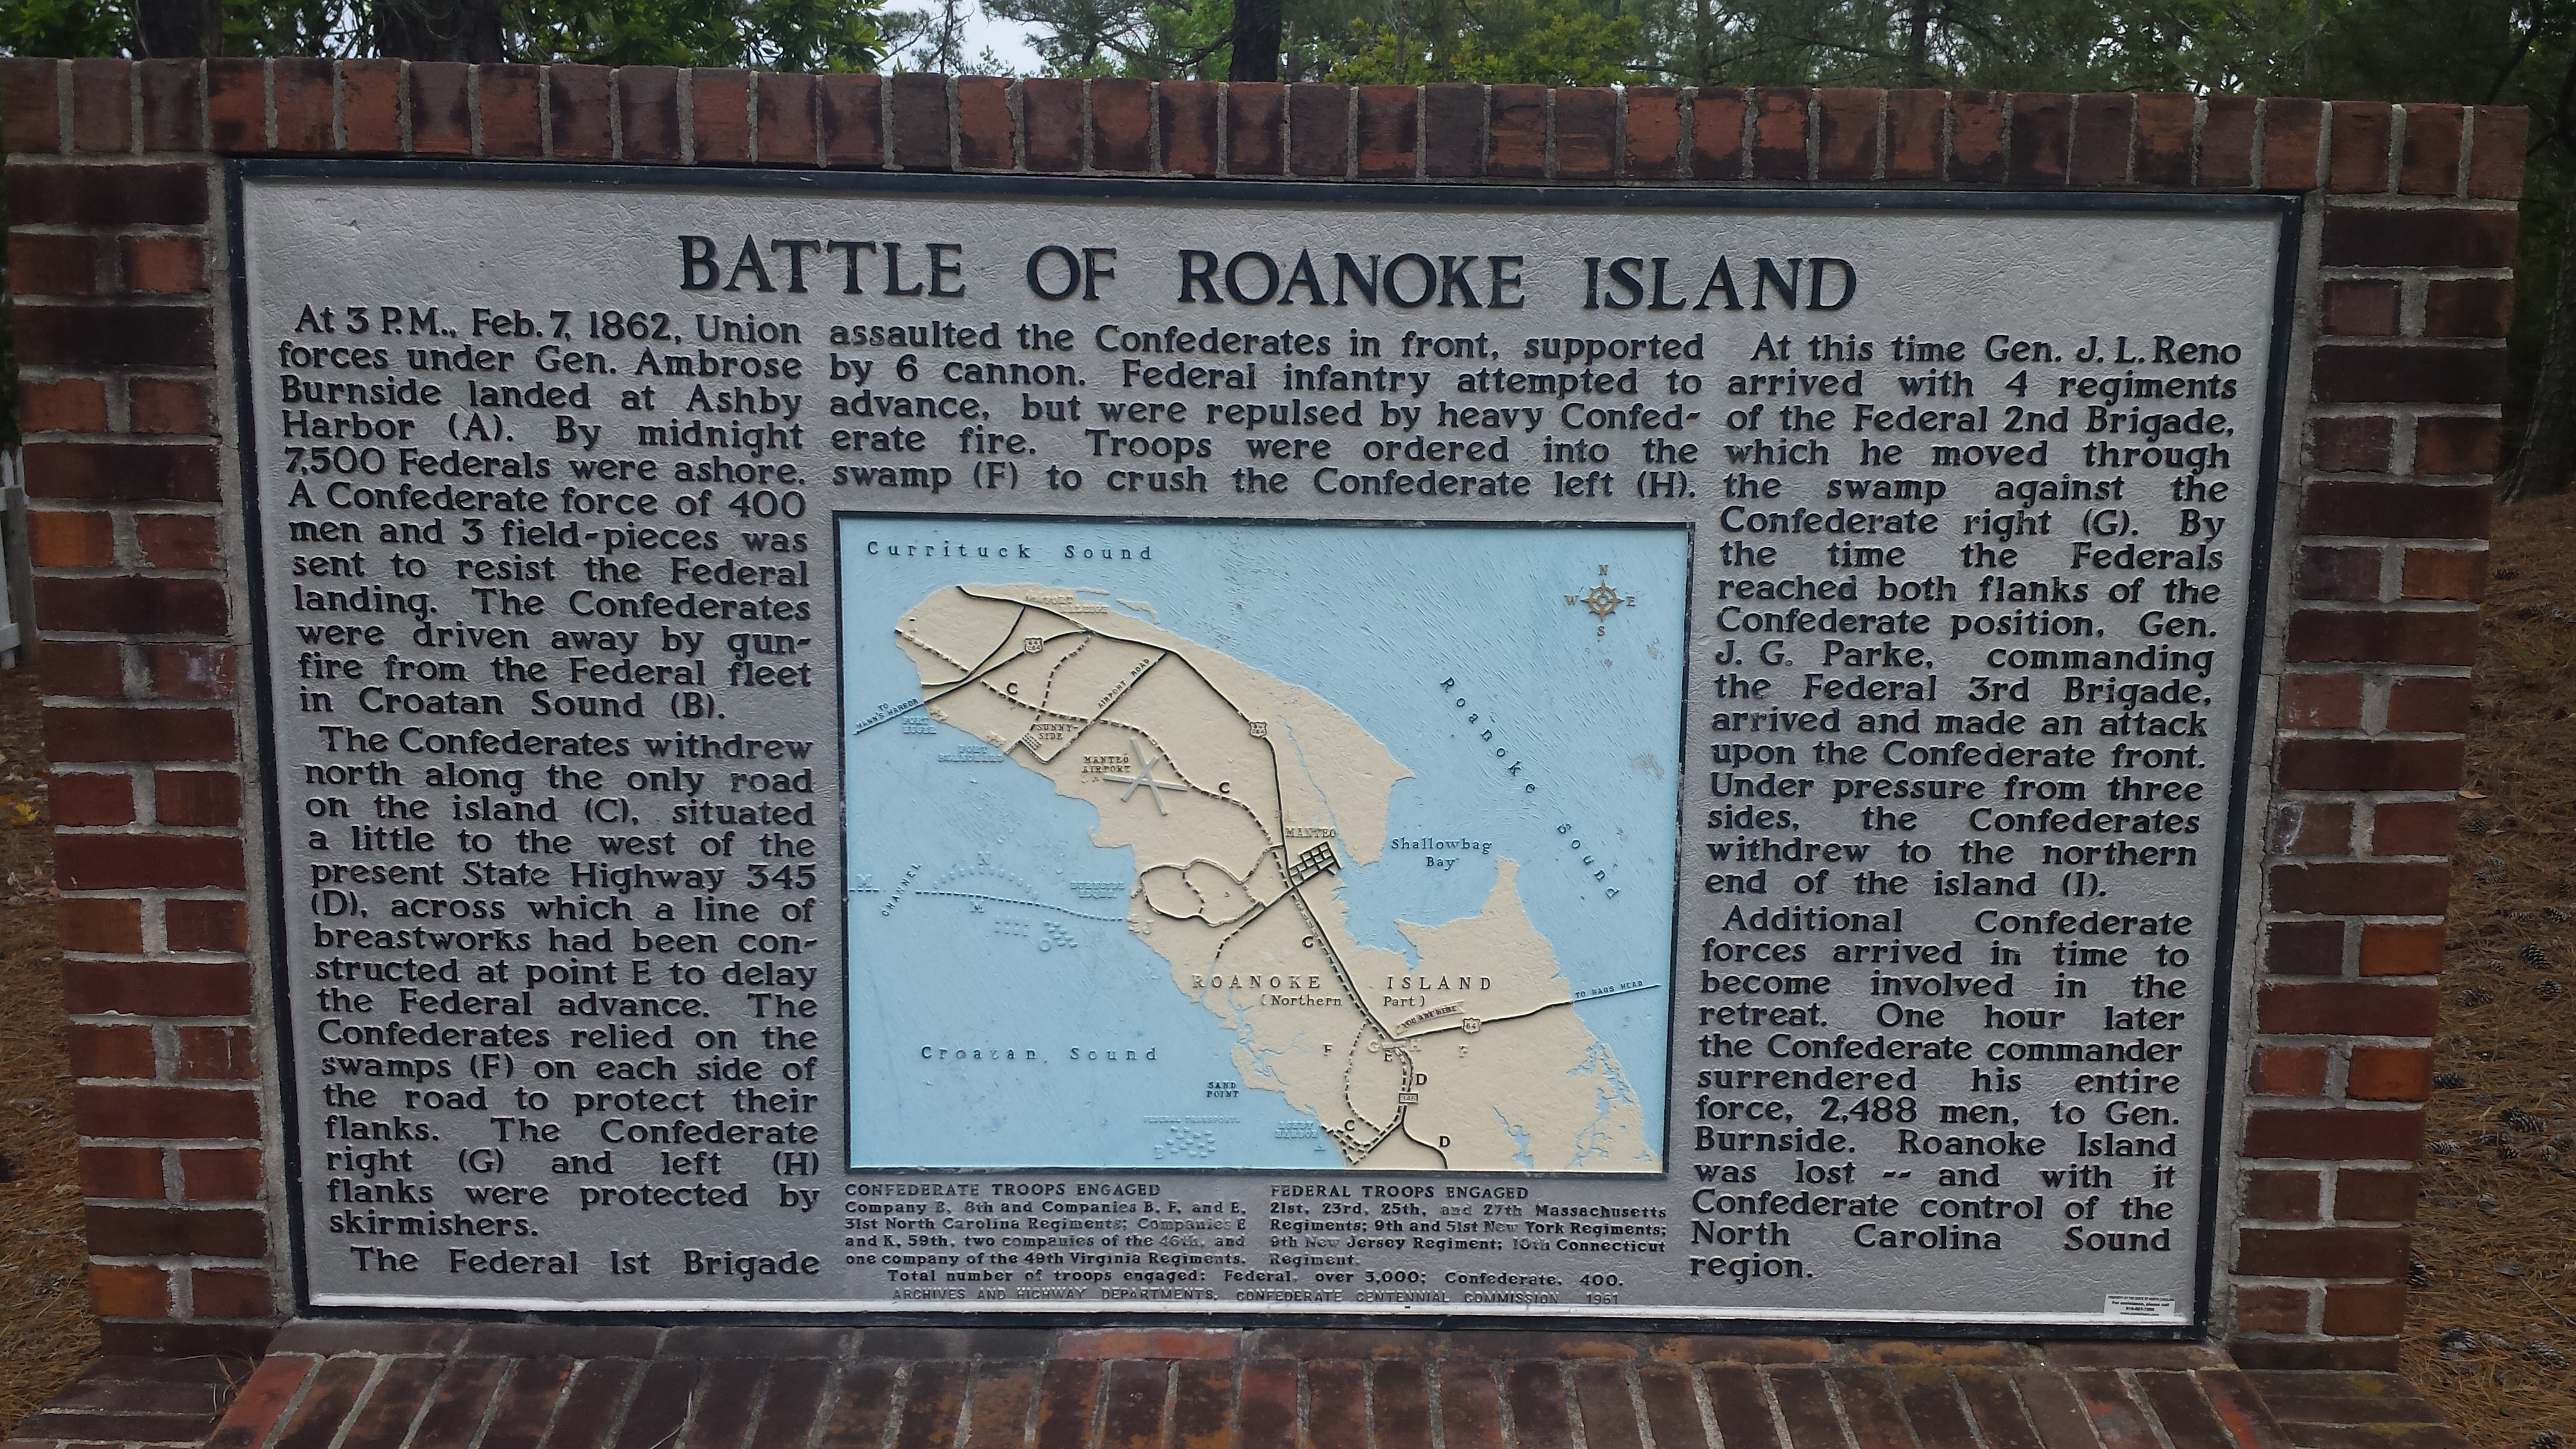 Monument recapping what happened during the battle of Roanoke Island.